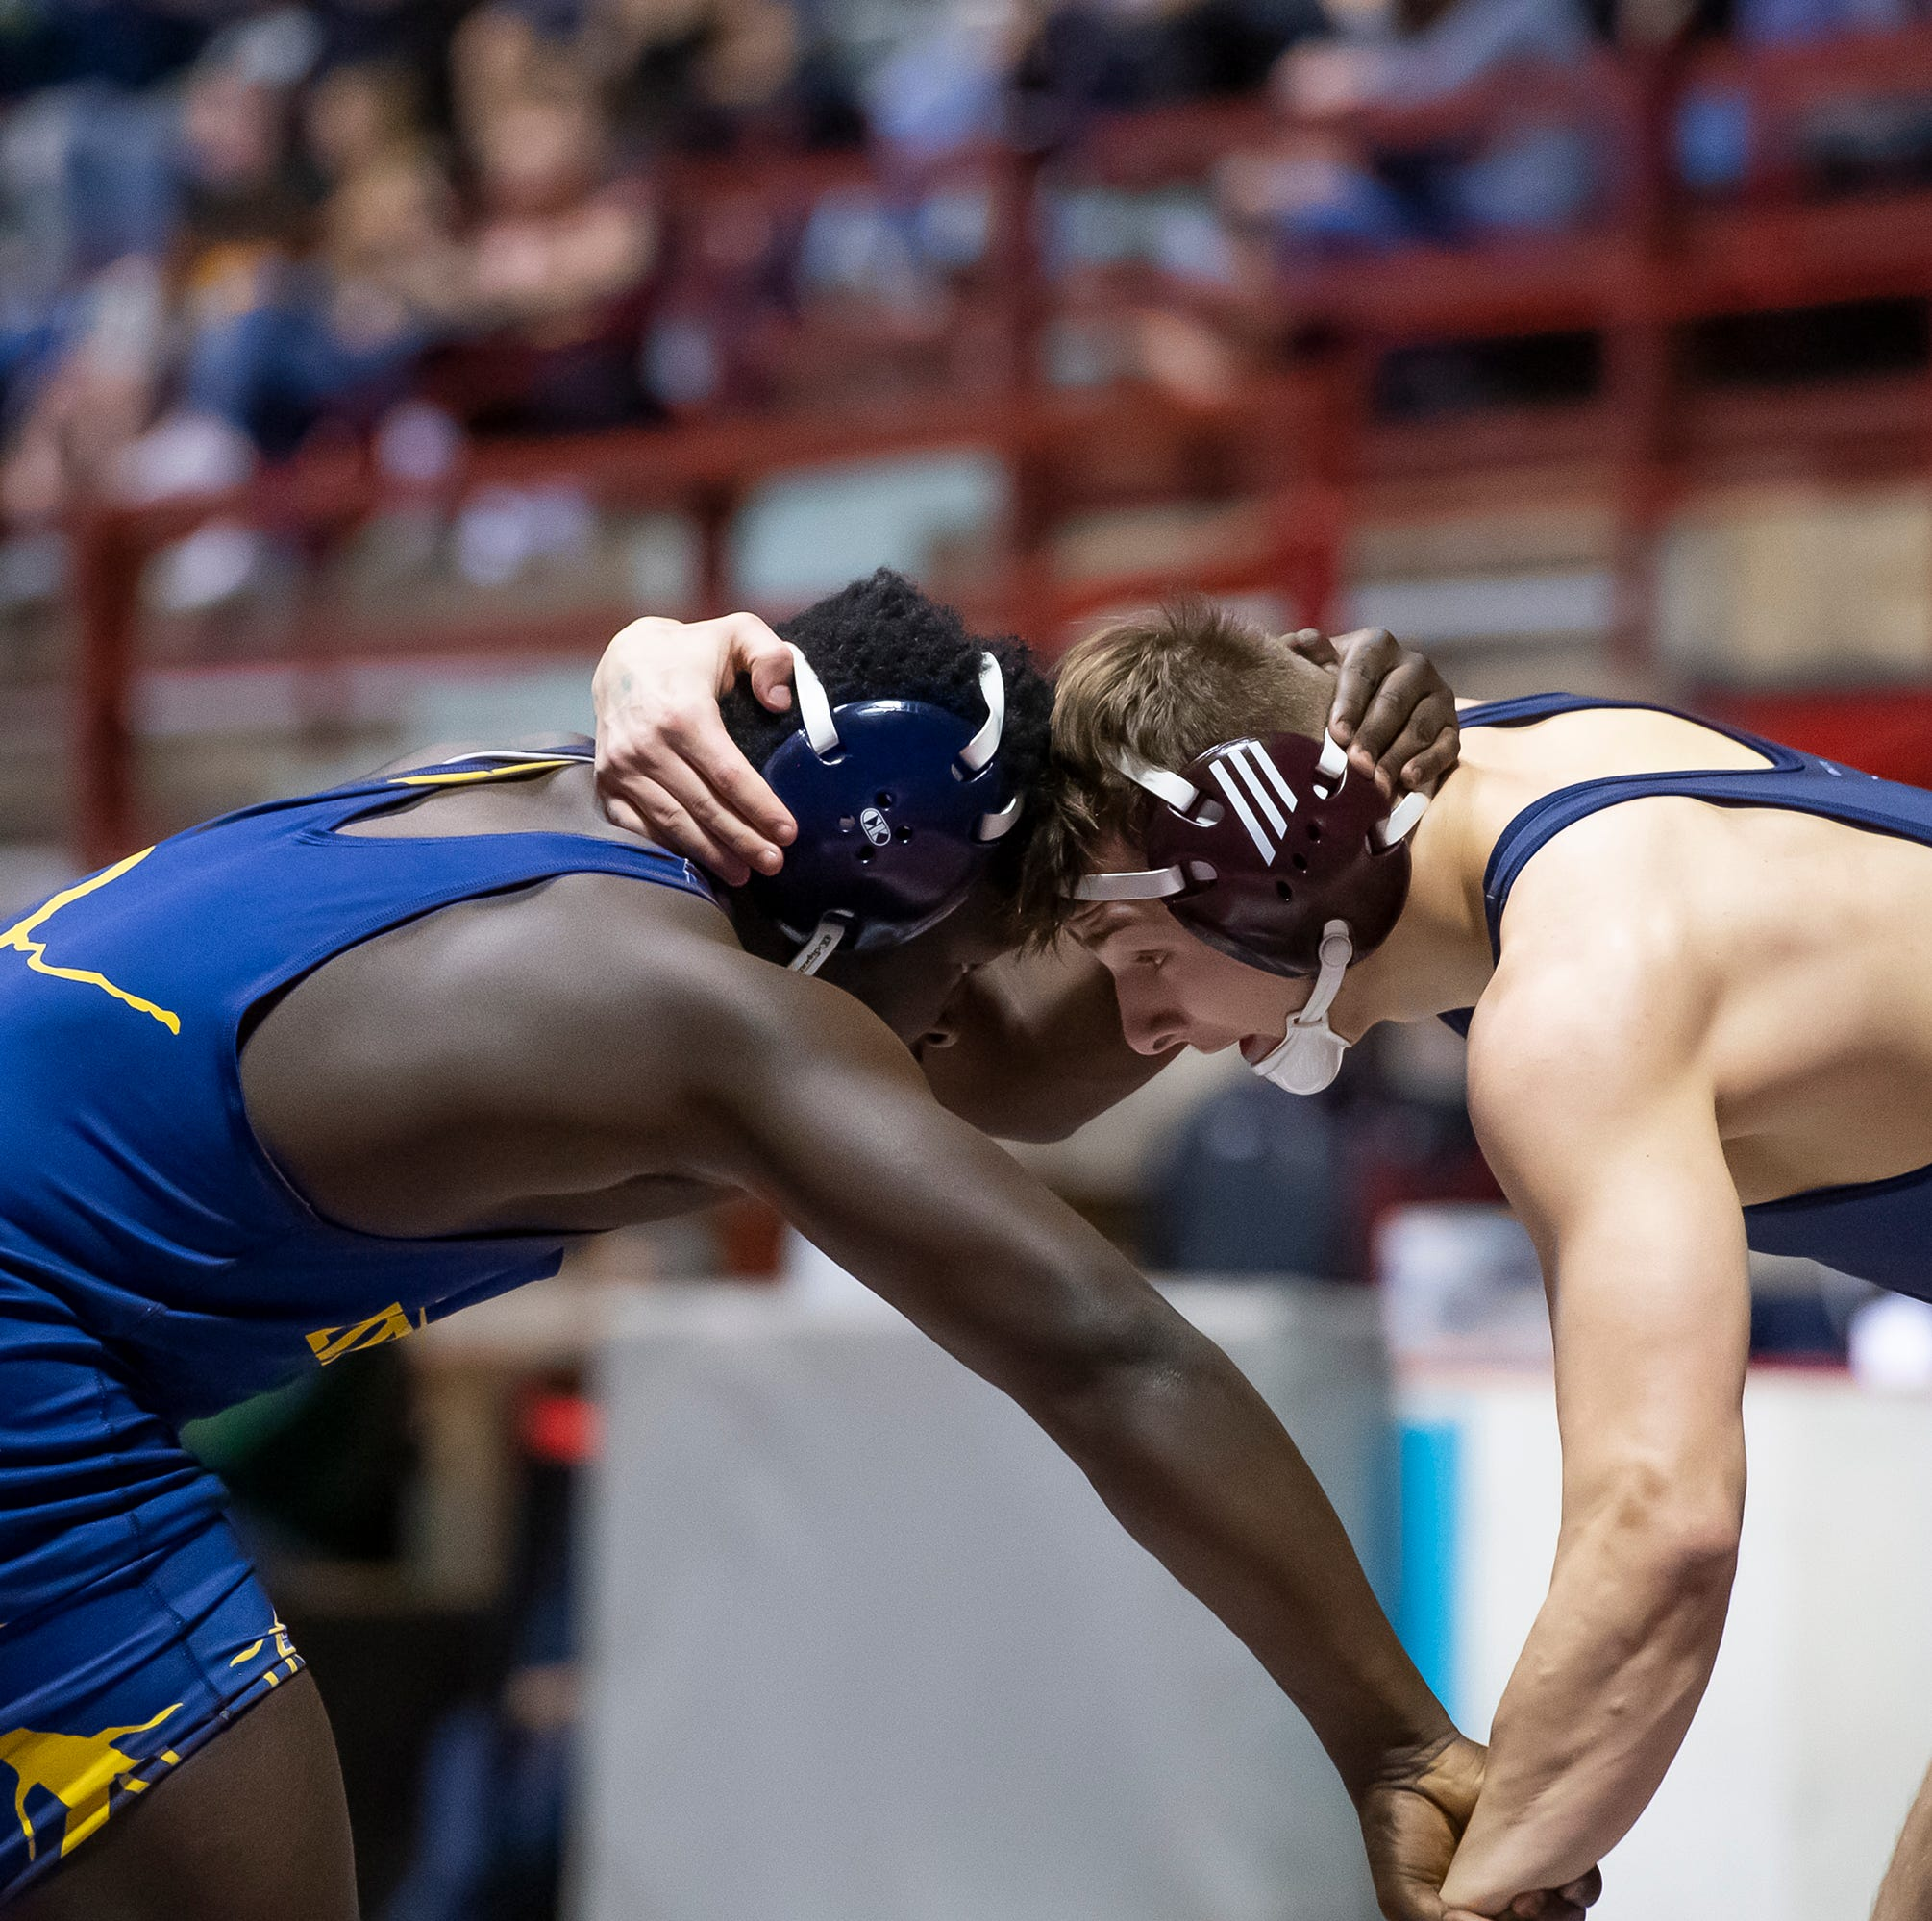 How to watch the PIAA wrestling championships